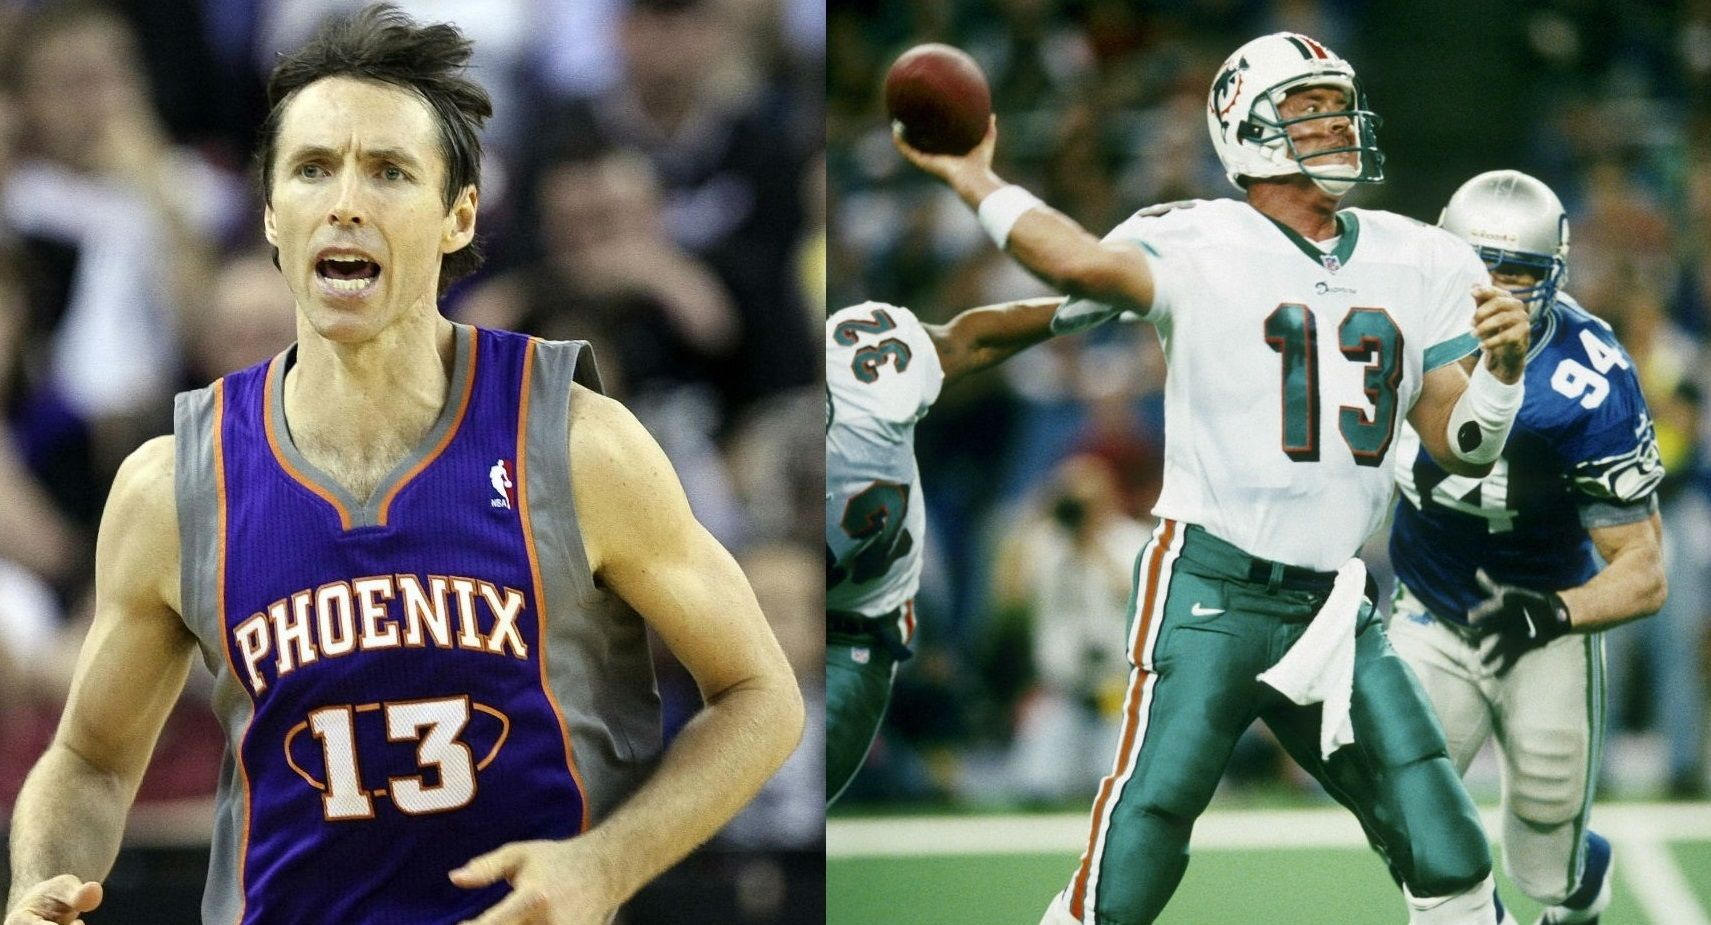 The 10 Greatest Athletes Who Never Won a Championship